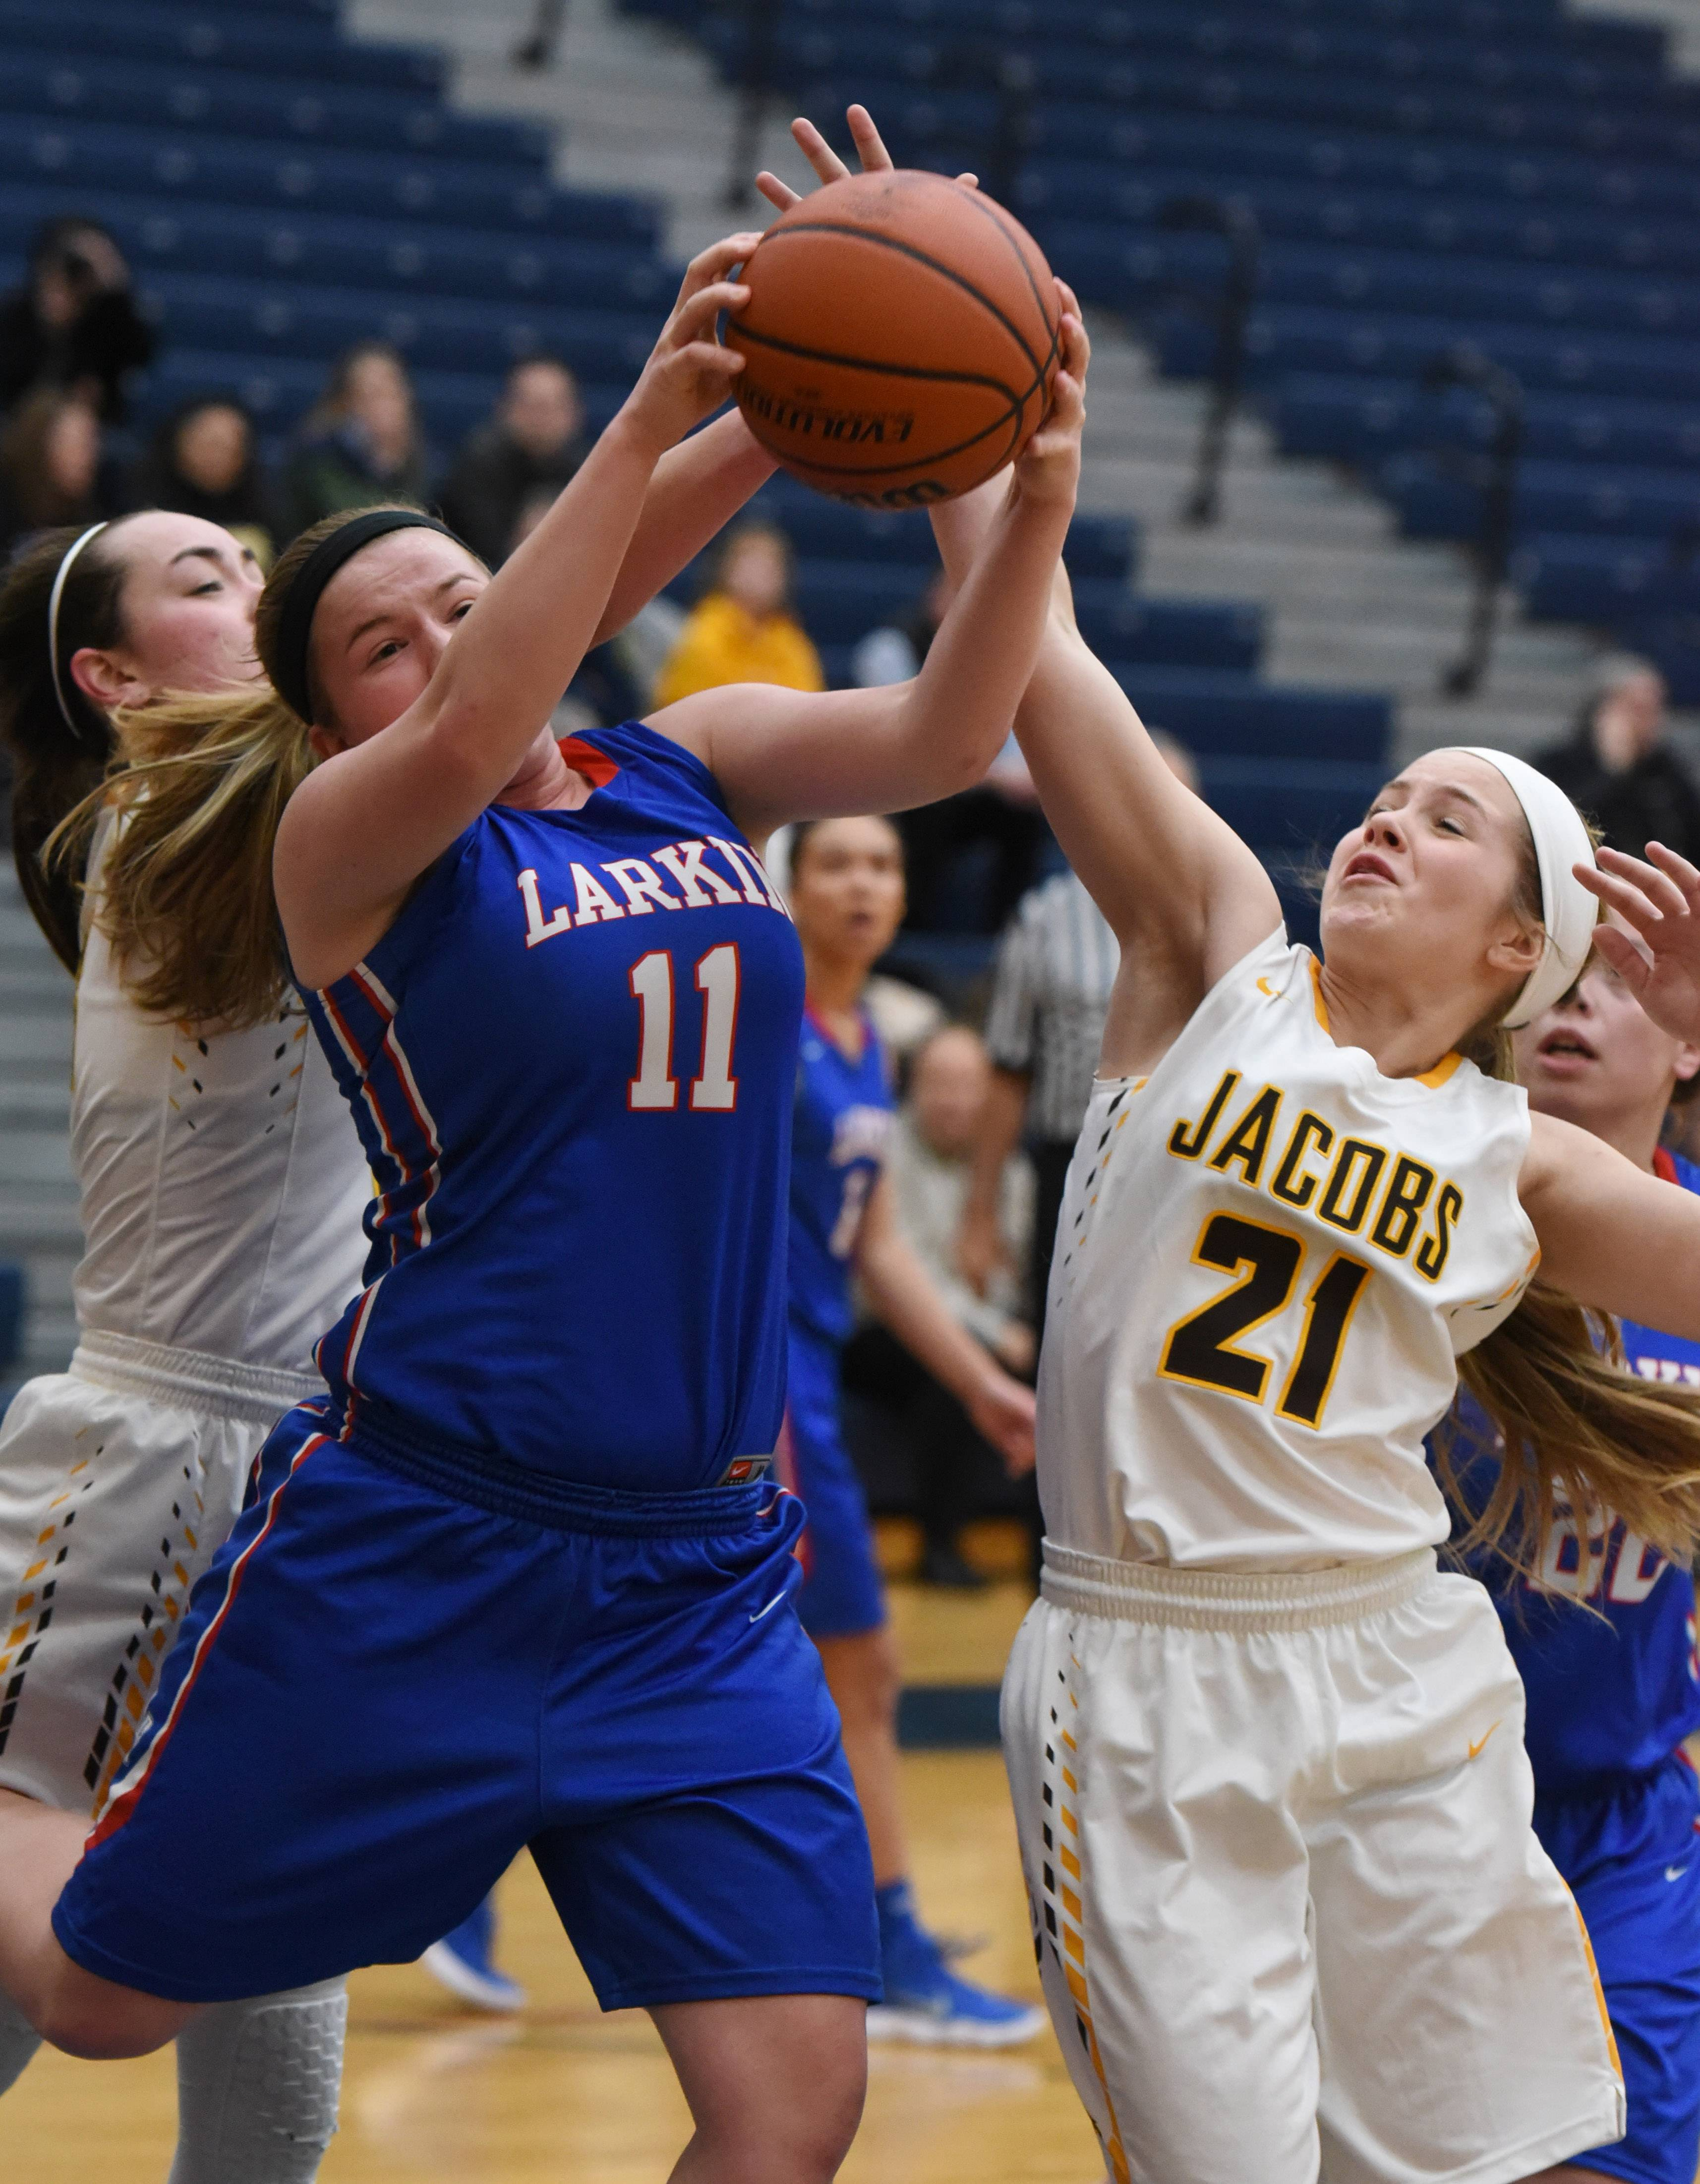 Larkin's Haley Bohne (11) and Jacobs' Delaney Garden fight for a rebound during Monday's Class 4A South Elgin regional girls basketball game.